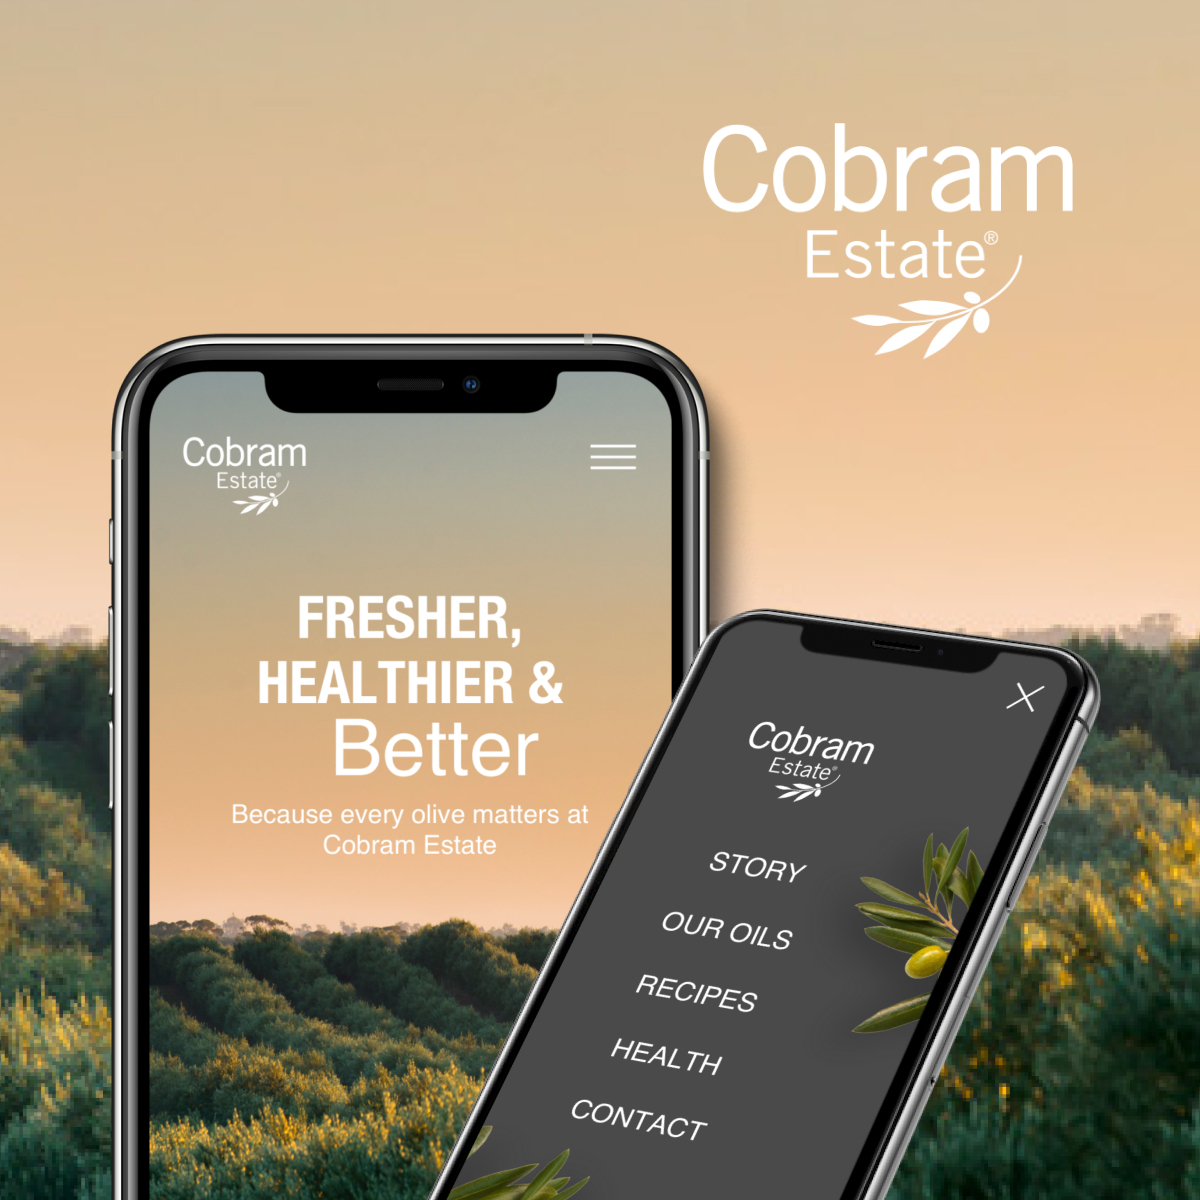 Cobram Estate